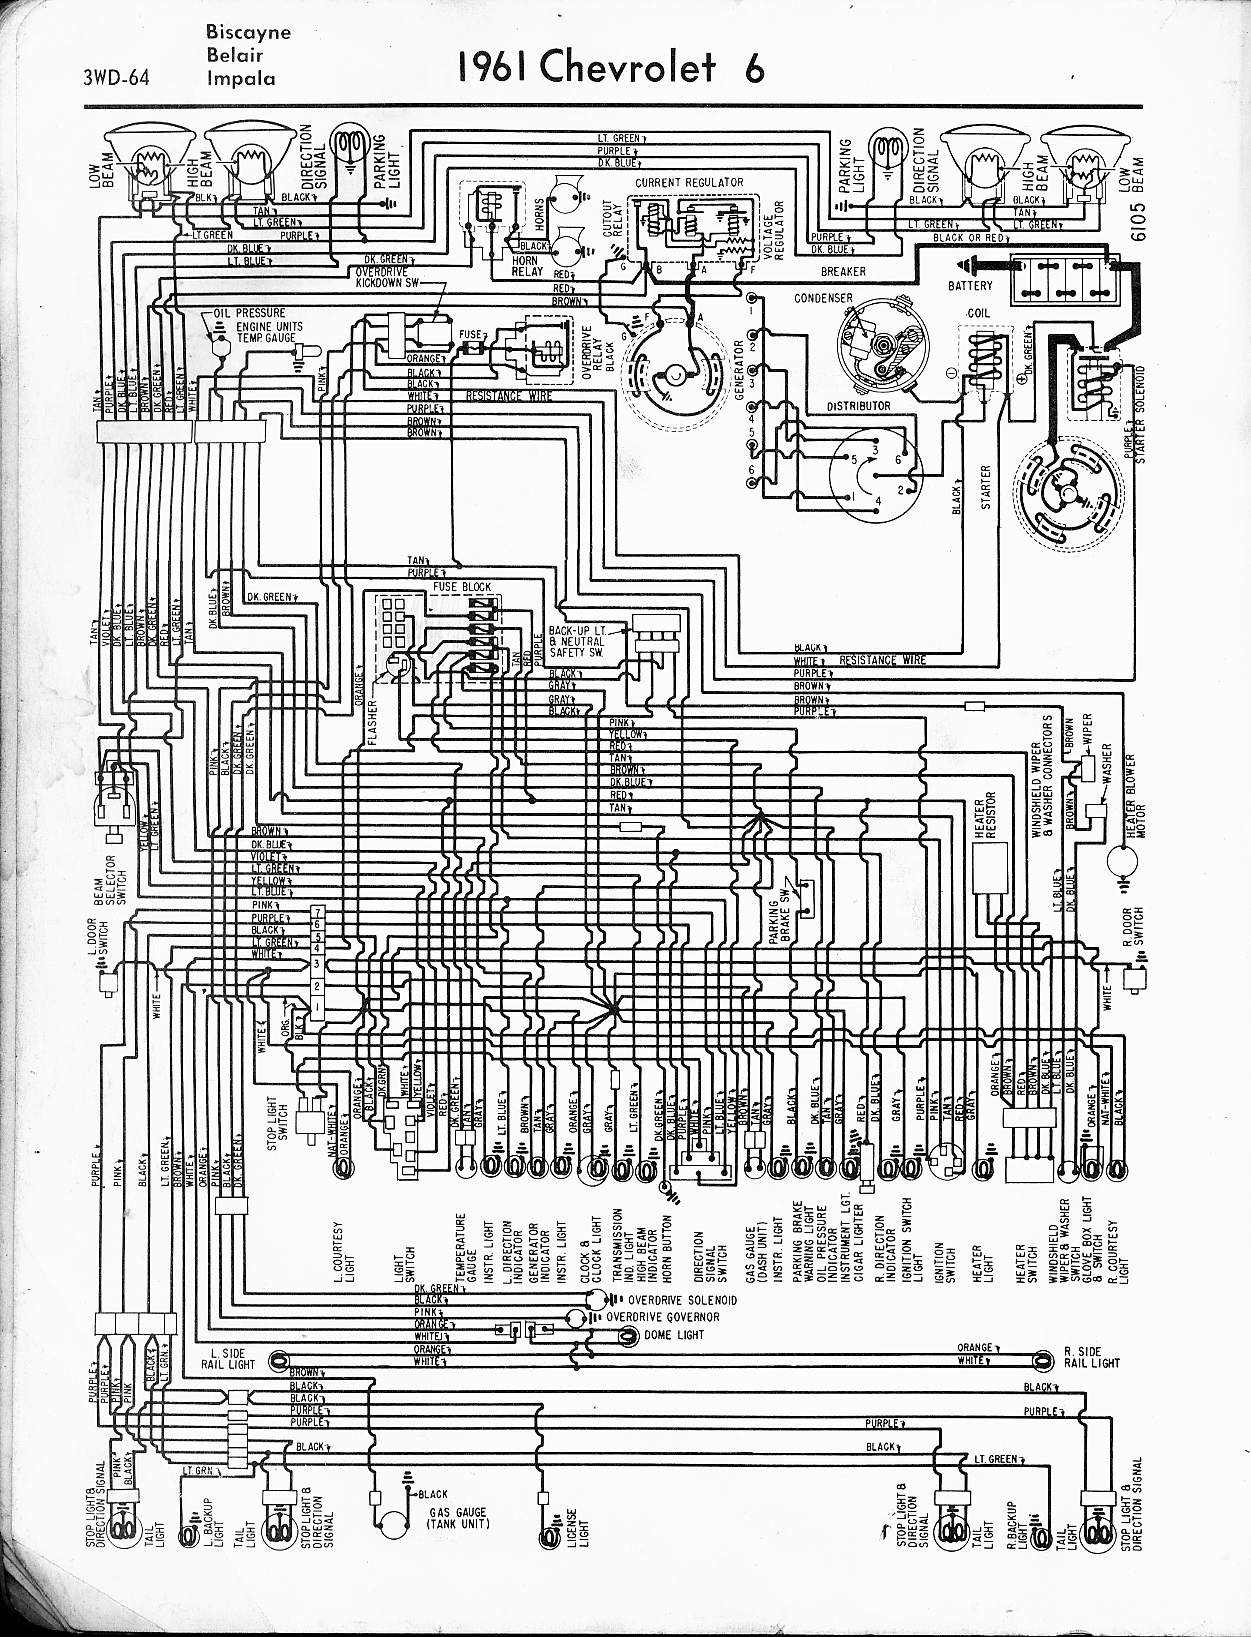 1957 Bel Air Fuse Box Archive Of Automotive Wiring Diagram 2001 Suburban Dome Light Chevy Schemes Rh Cabanaselgolfo Com